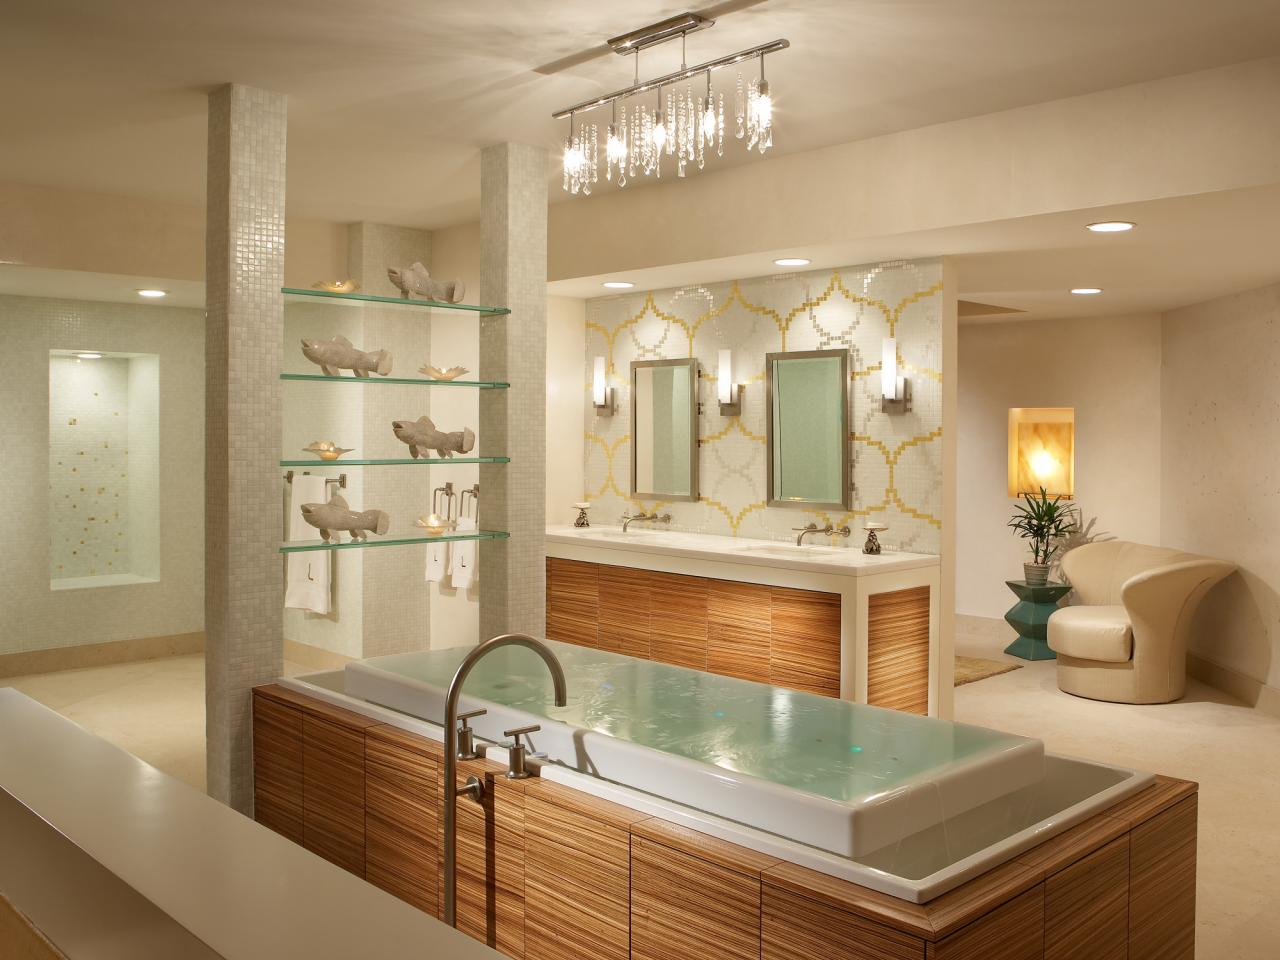 Bathroom lighting essentials guide adorable home luxury bathroom mozeypictures Choice Image